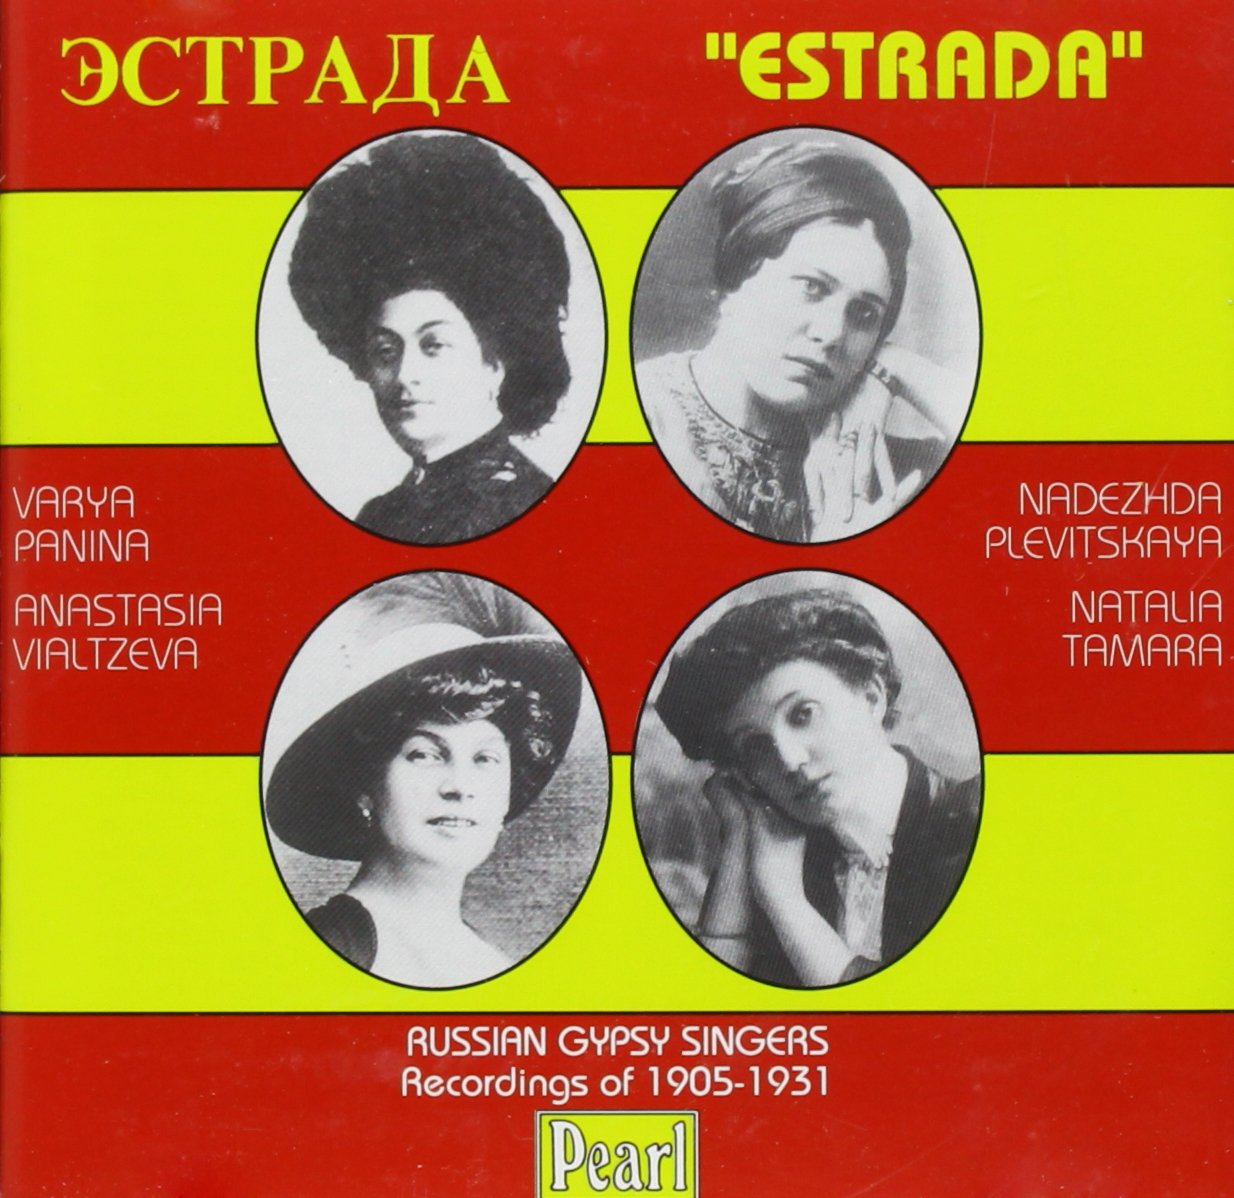 Estrada: Russian Gypsy Singers, Recordings of 1905-1931